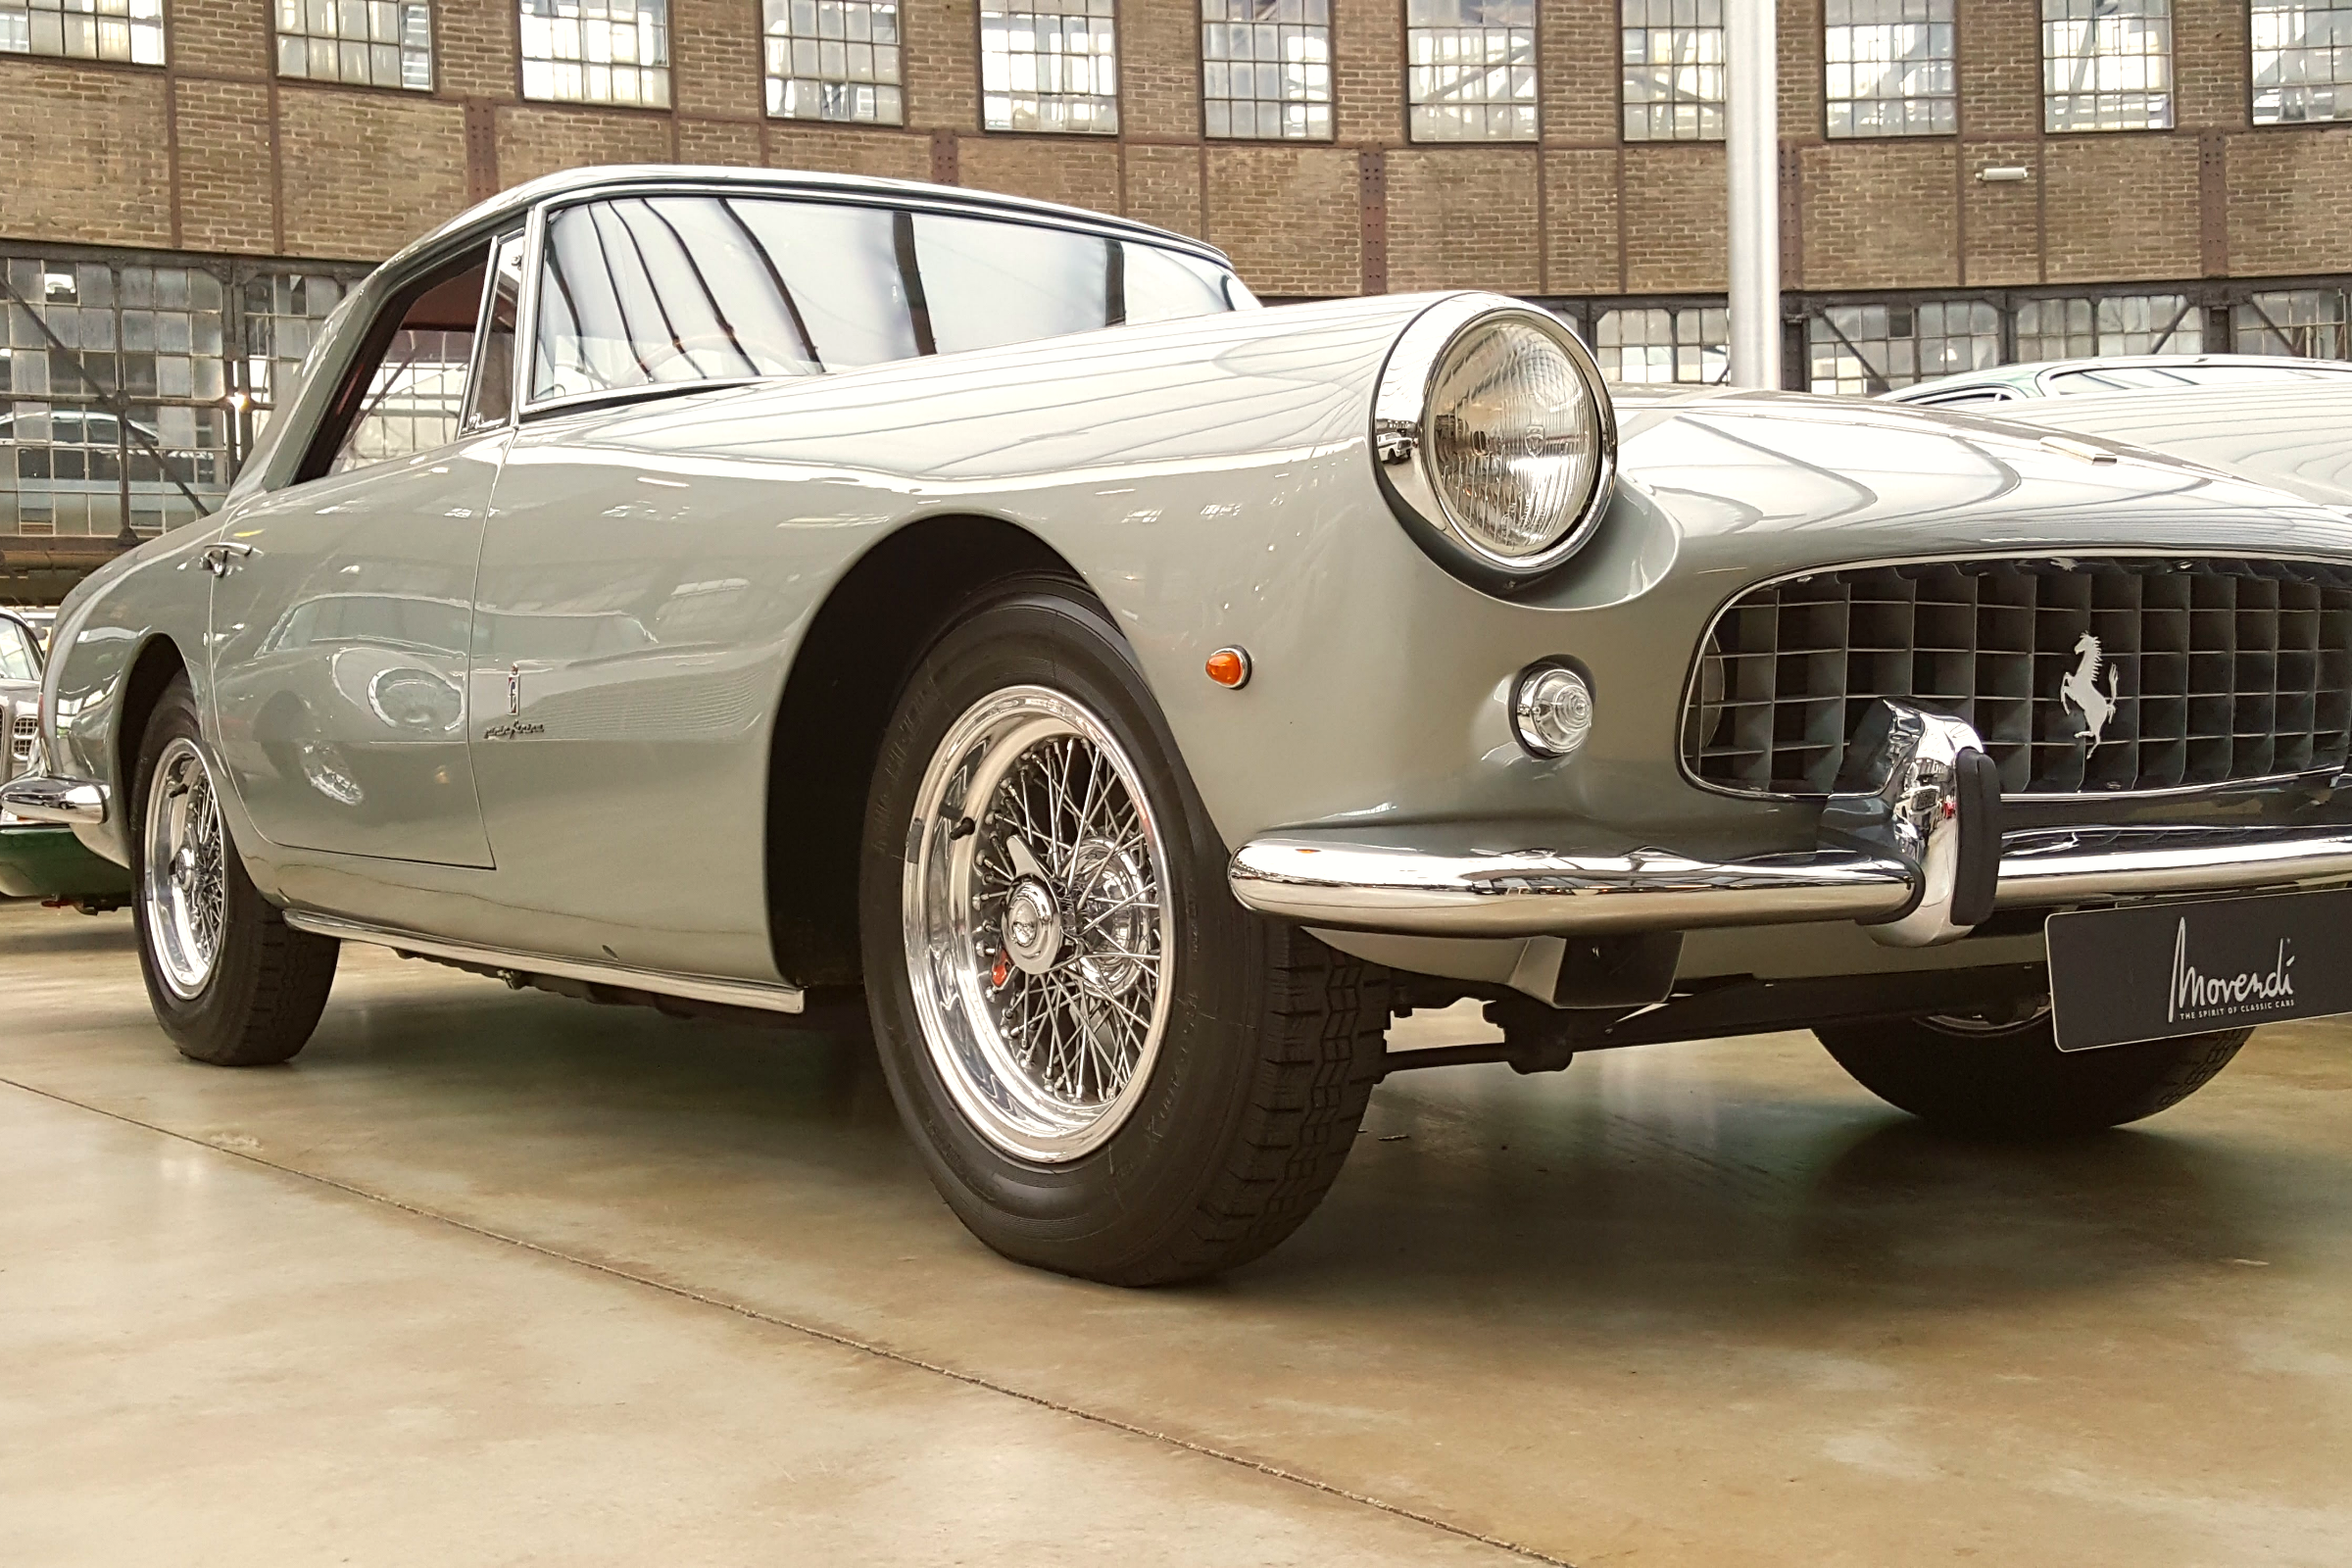 Vintage Ferrari at Classic Remise Düsseldorf, Germany Photo Courtesy of Patrick T Cooper